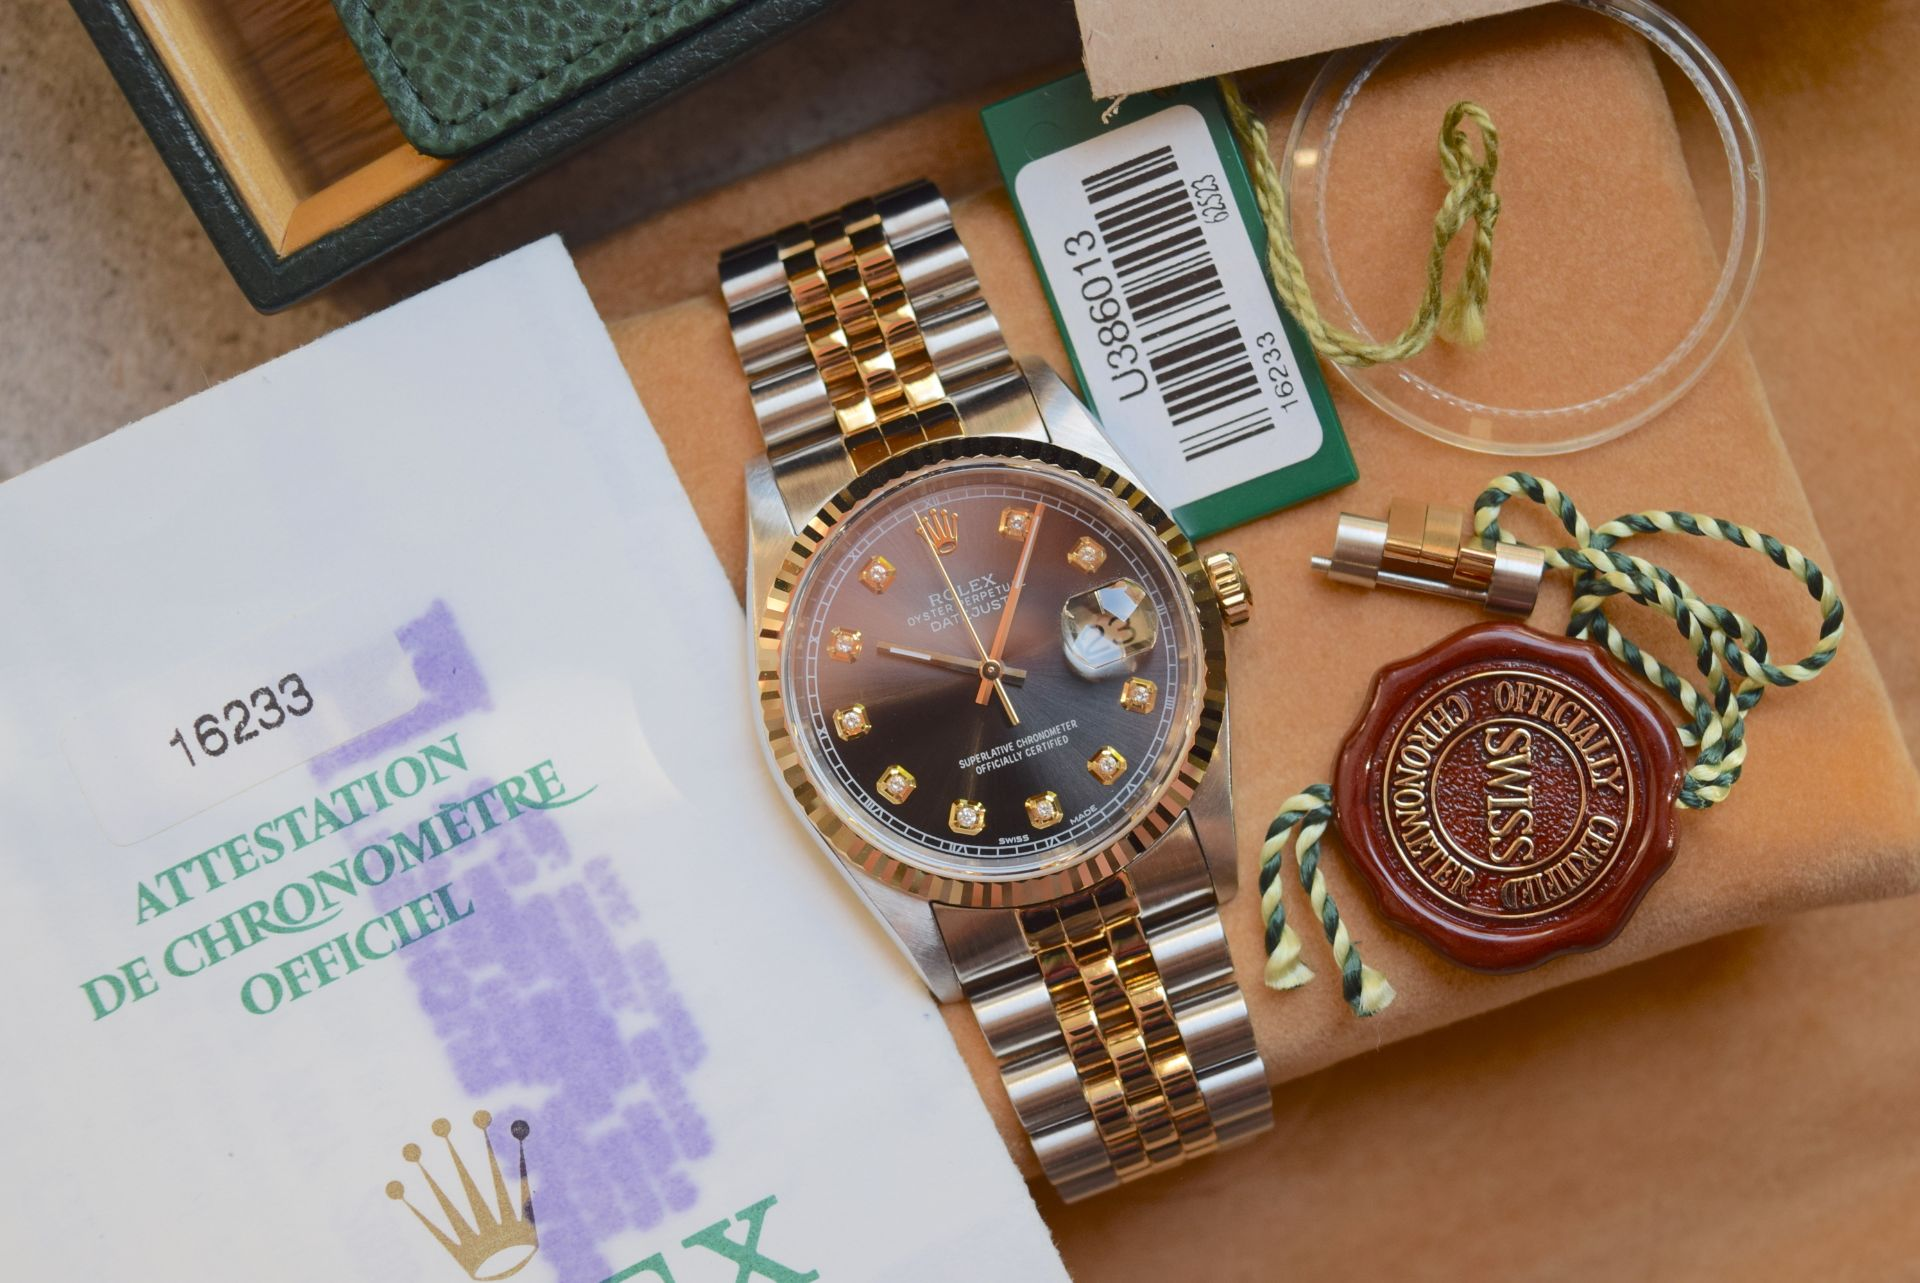 18CT GOLD/ STEEL ROLEX DATEJUST - 36MM, MENS (COMPLETE SET INC BOX, PAPERS, TAGS ETC) - Image 23 of 25